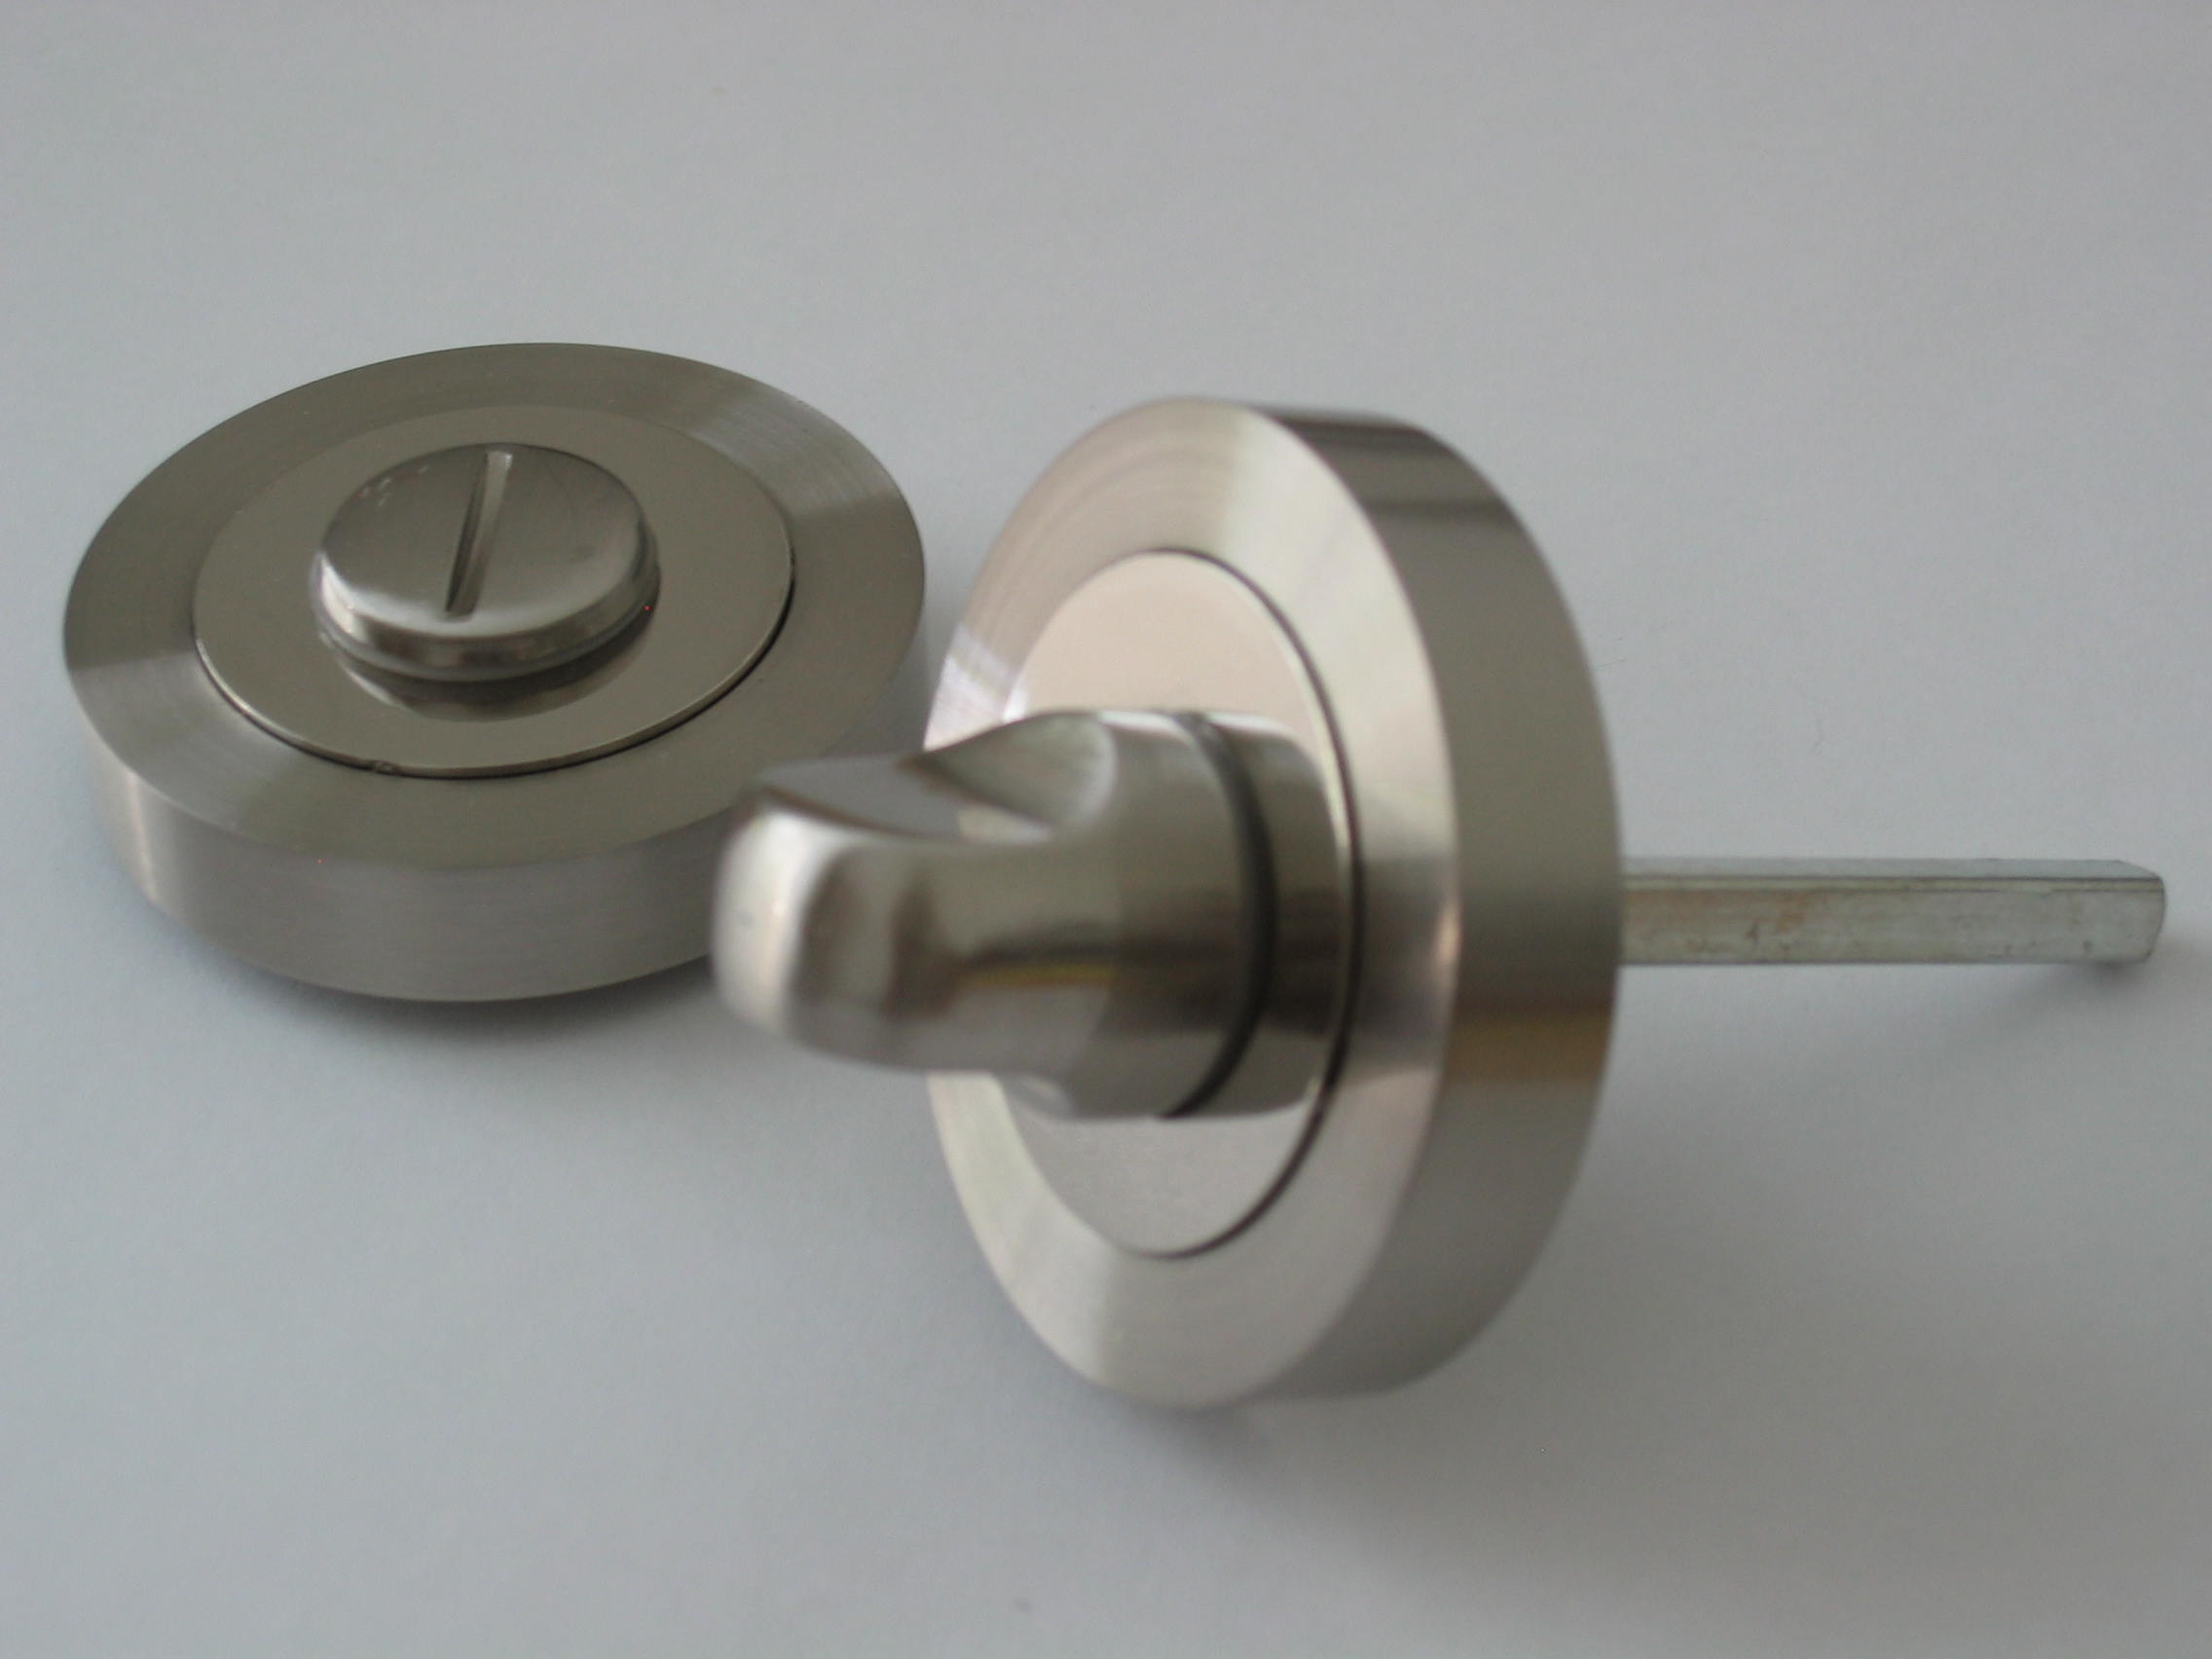 Permalink to Bathroom Door Knob Set